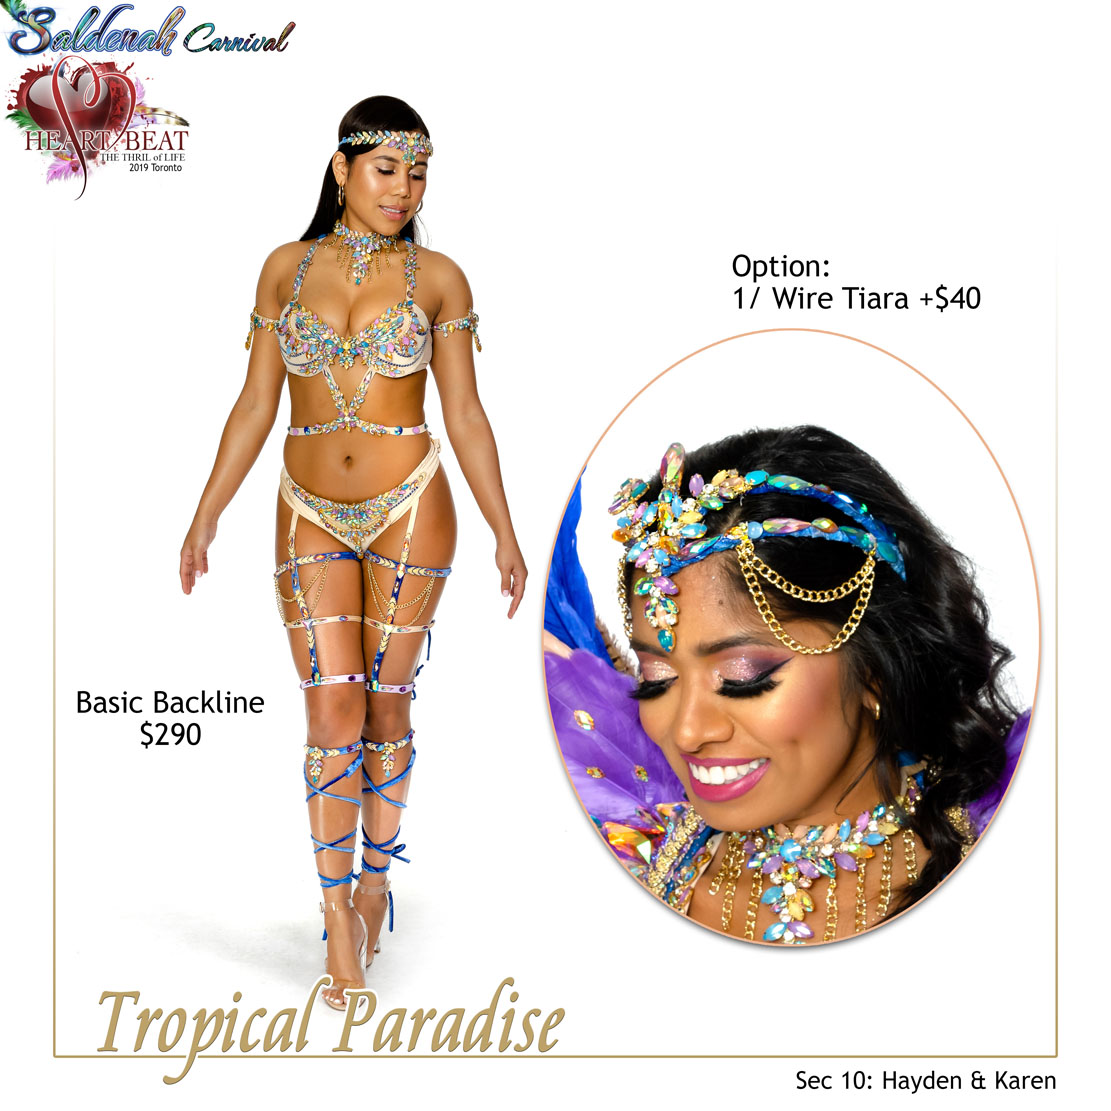 Saldenah Carnival Section 10 Tropical Paradise